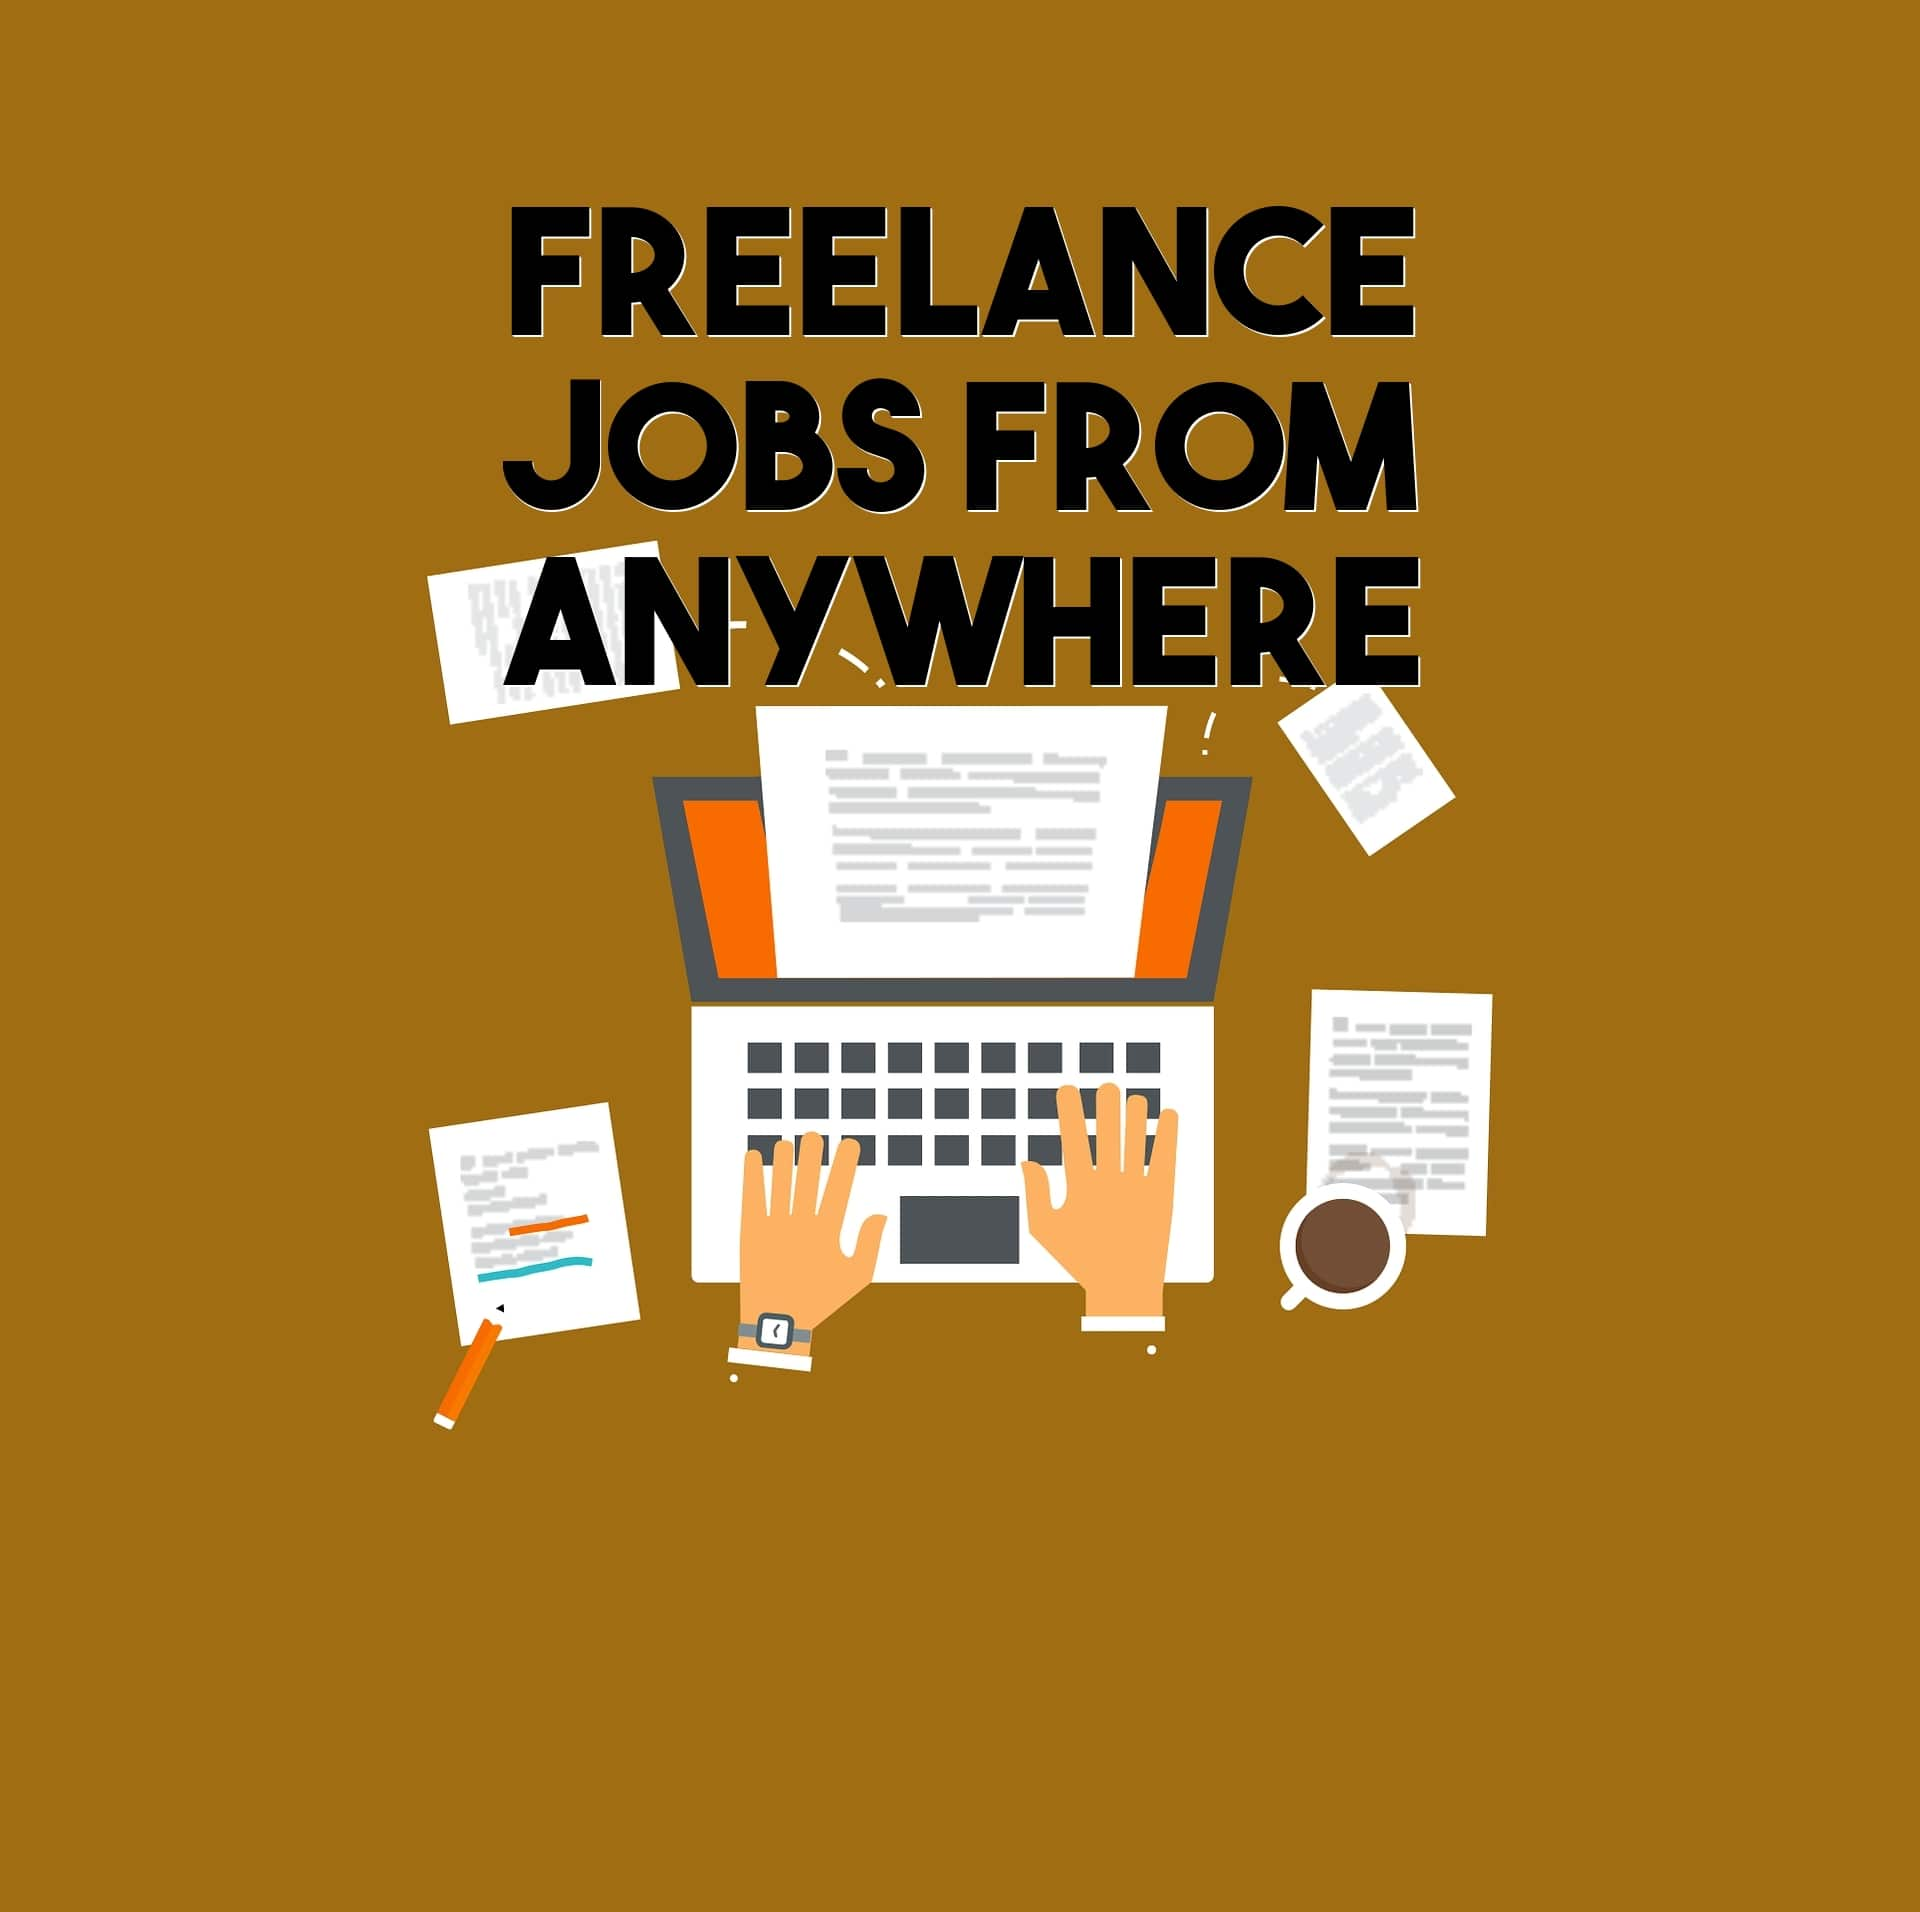 freelance jobs from anywhere